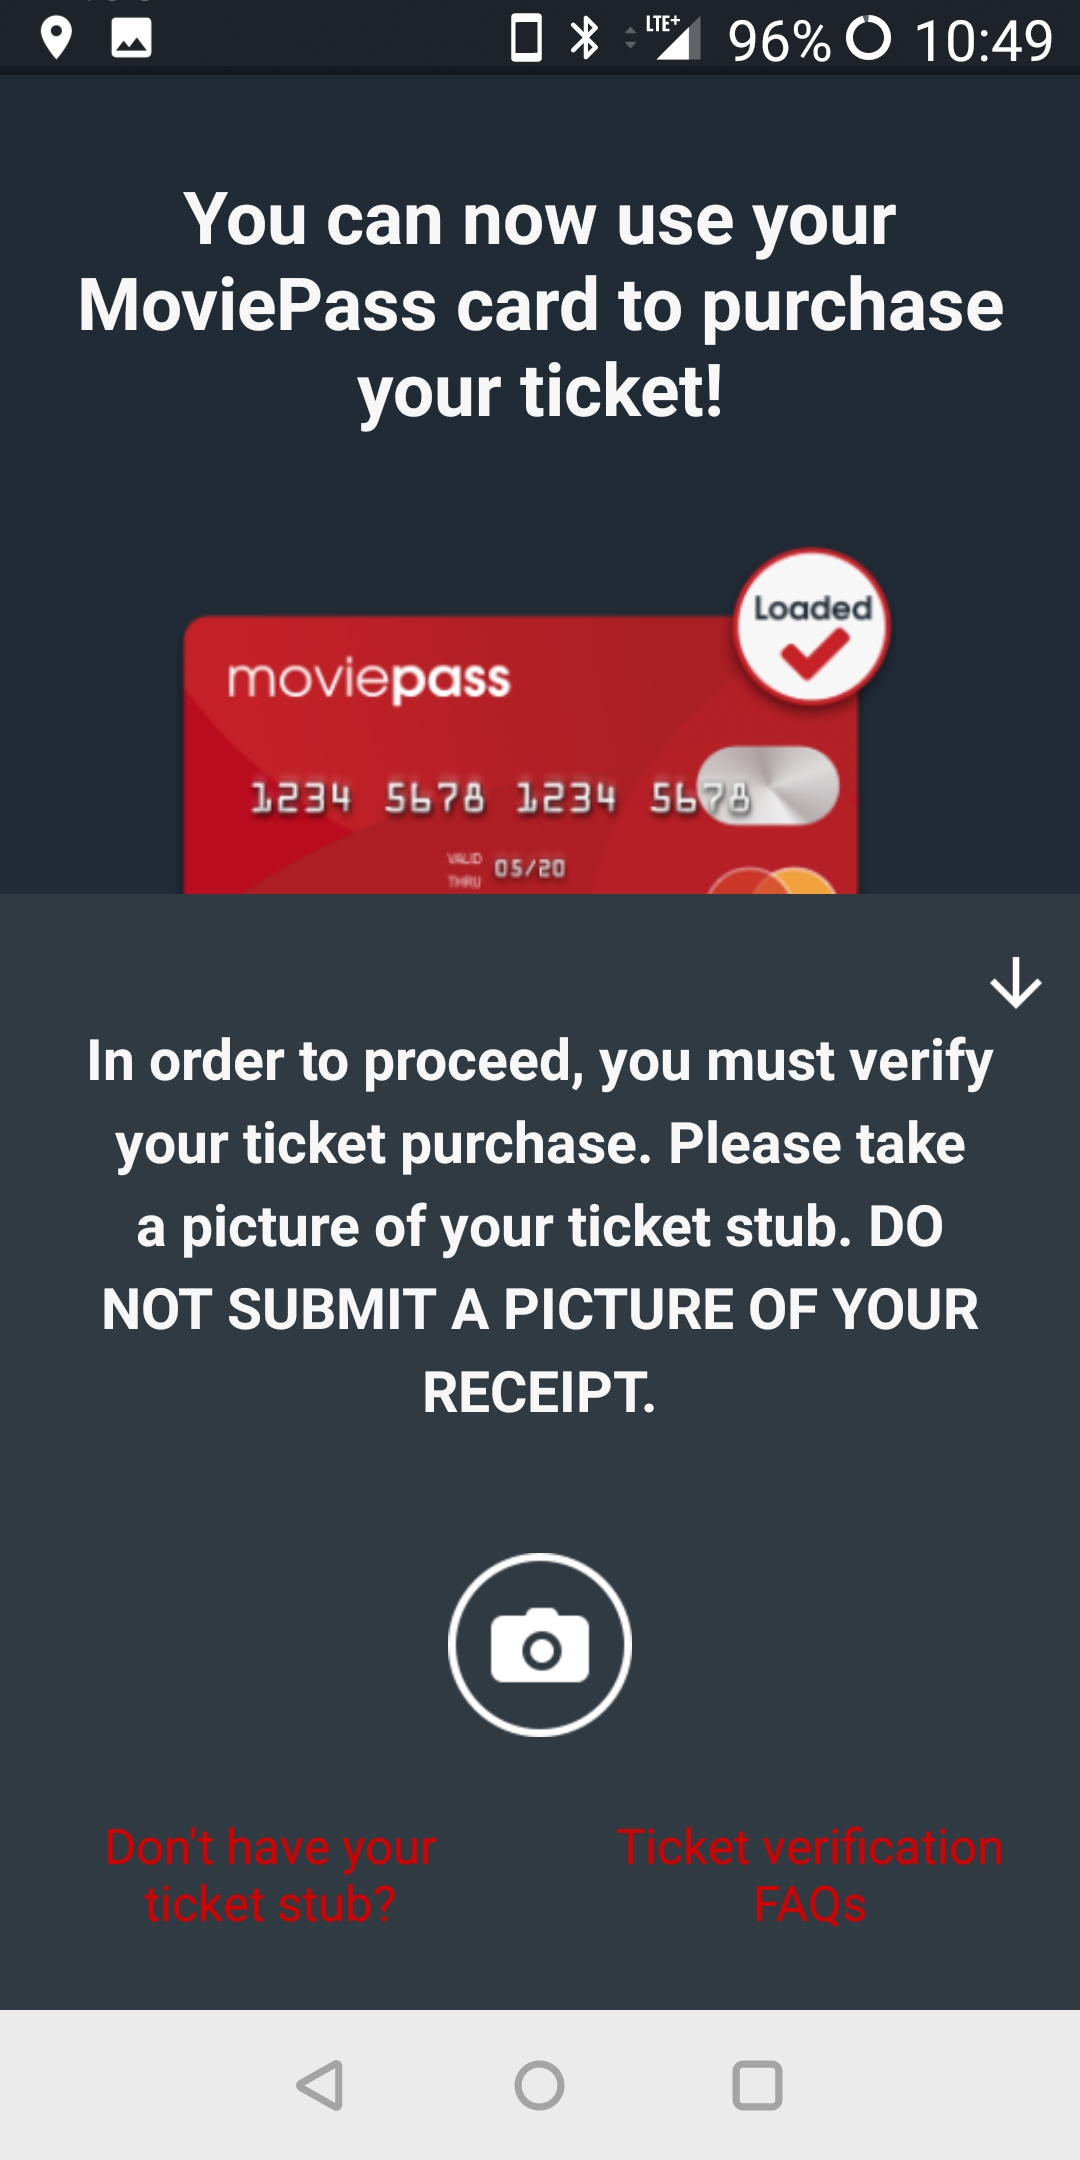 MoviePass Ticket Verification | DaveTavres.com